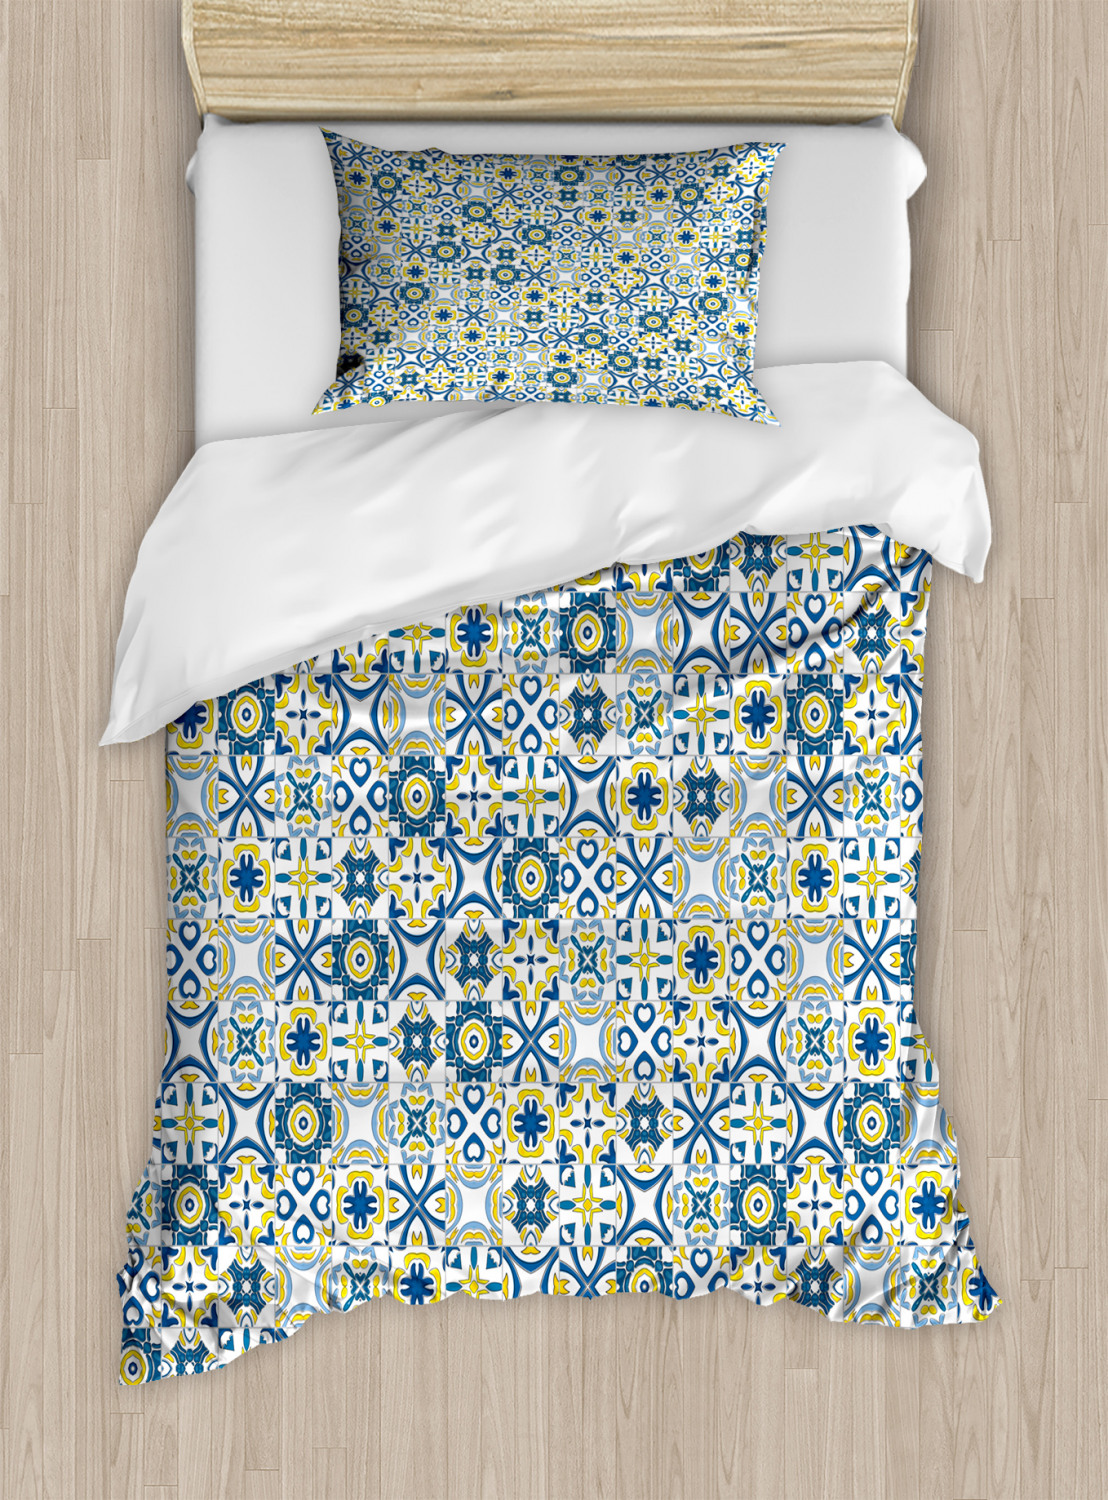 Timeless-Oriental-Duvet-Cover-Set-Twin-Queen-King-Sizes-with-Pillow-Shams thumbnail 61